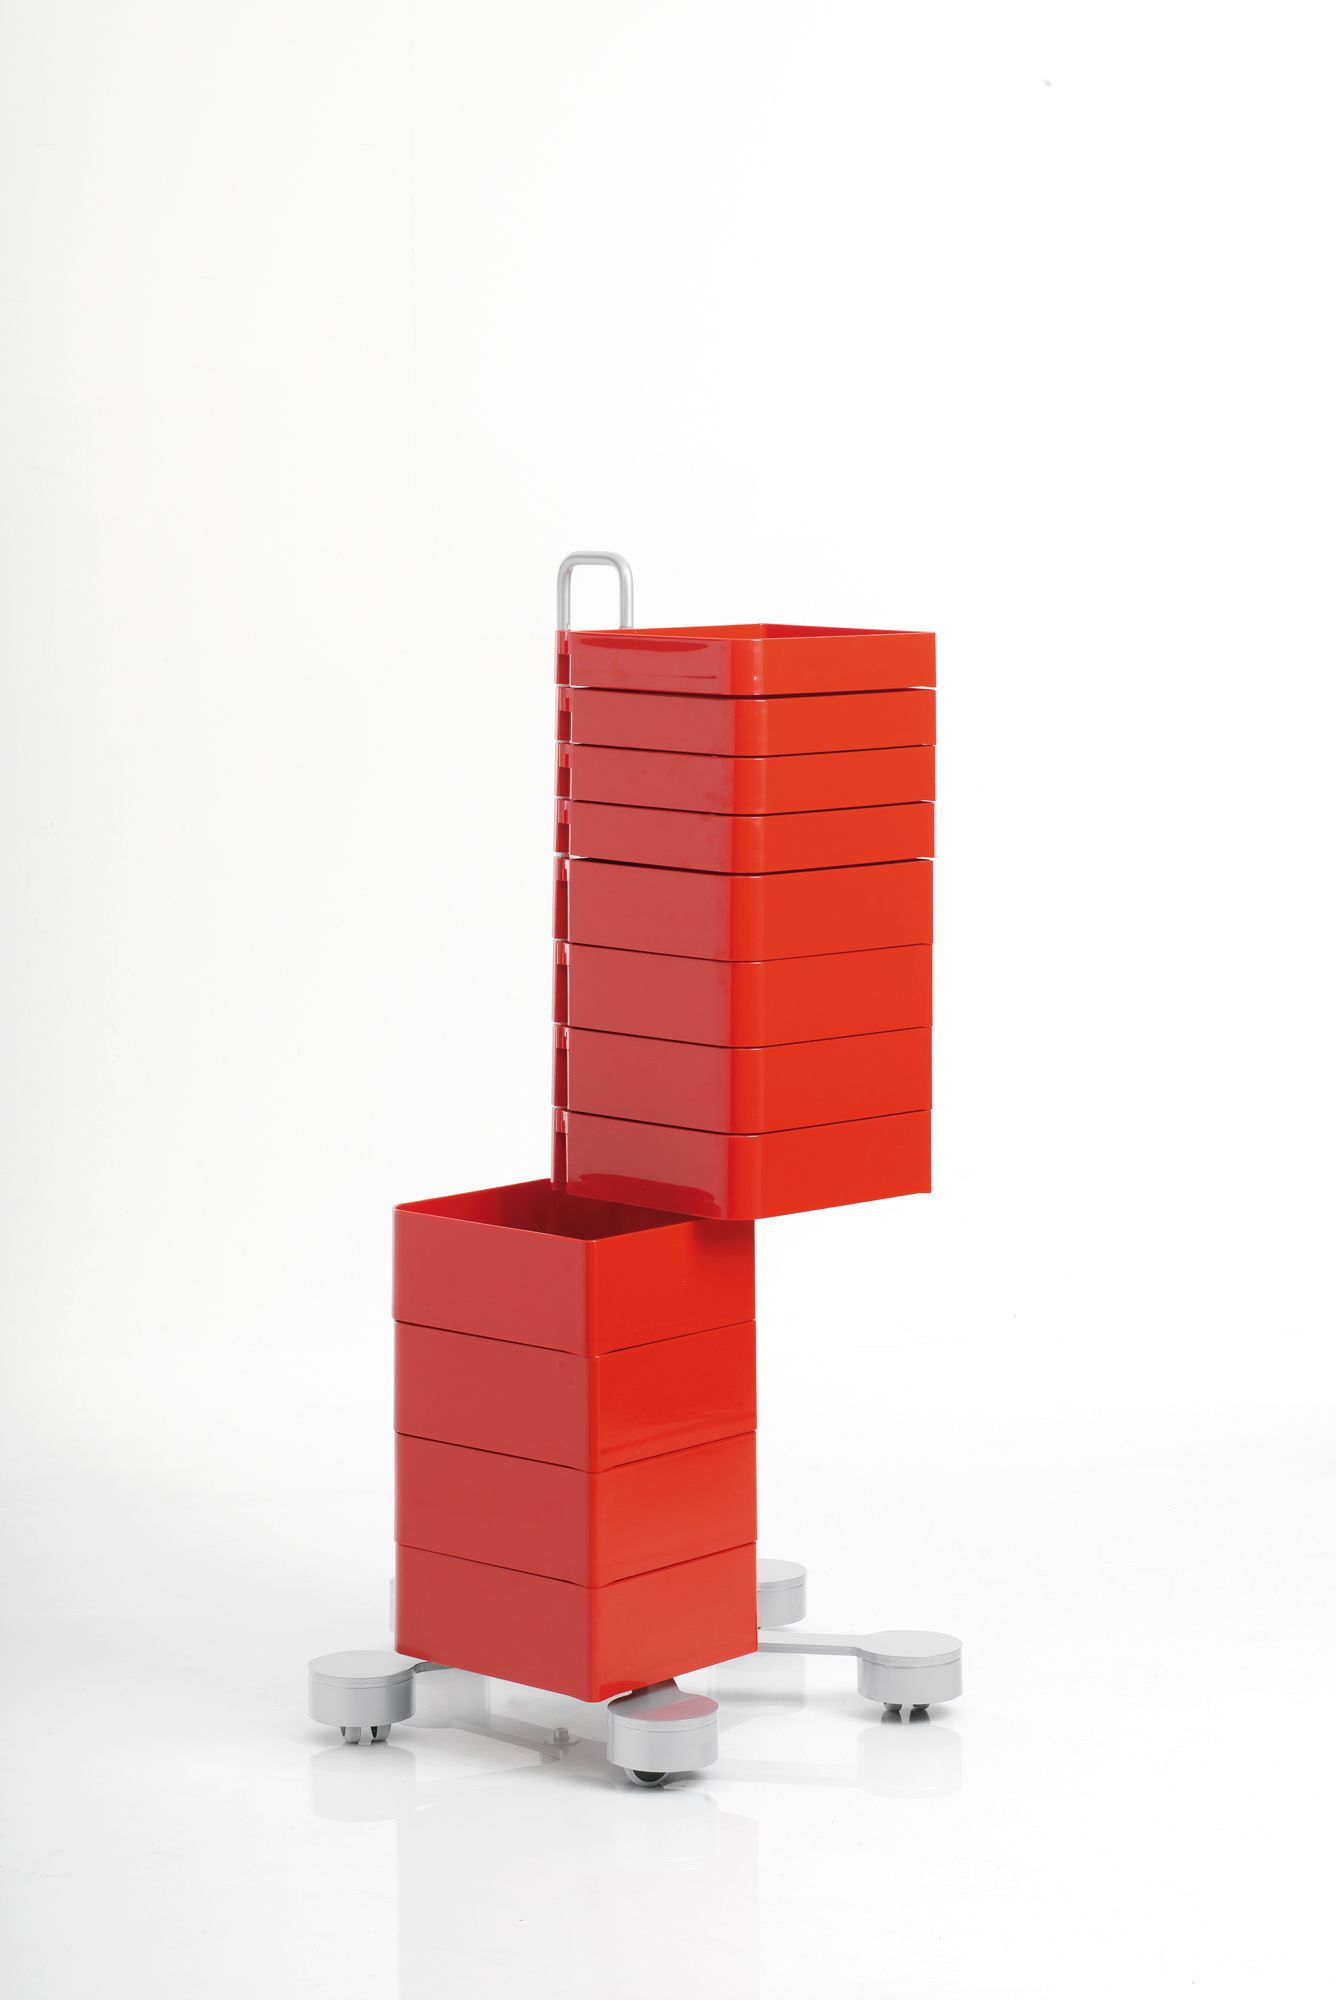 In injection-moulded ABS plastic with a structure in painted steel. The drawers can rotate up to 180°. Available also a fixed version for wall mounting. A design of Studio Joe Colombo, 2004.